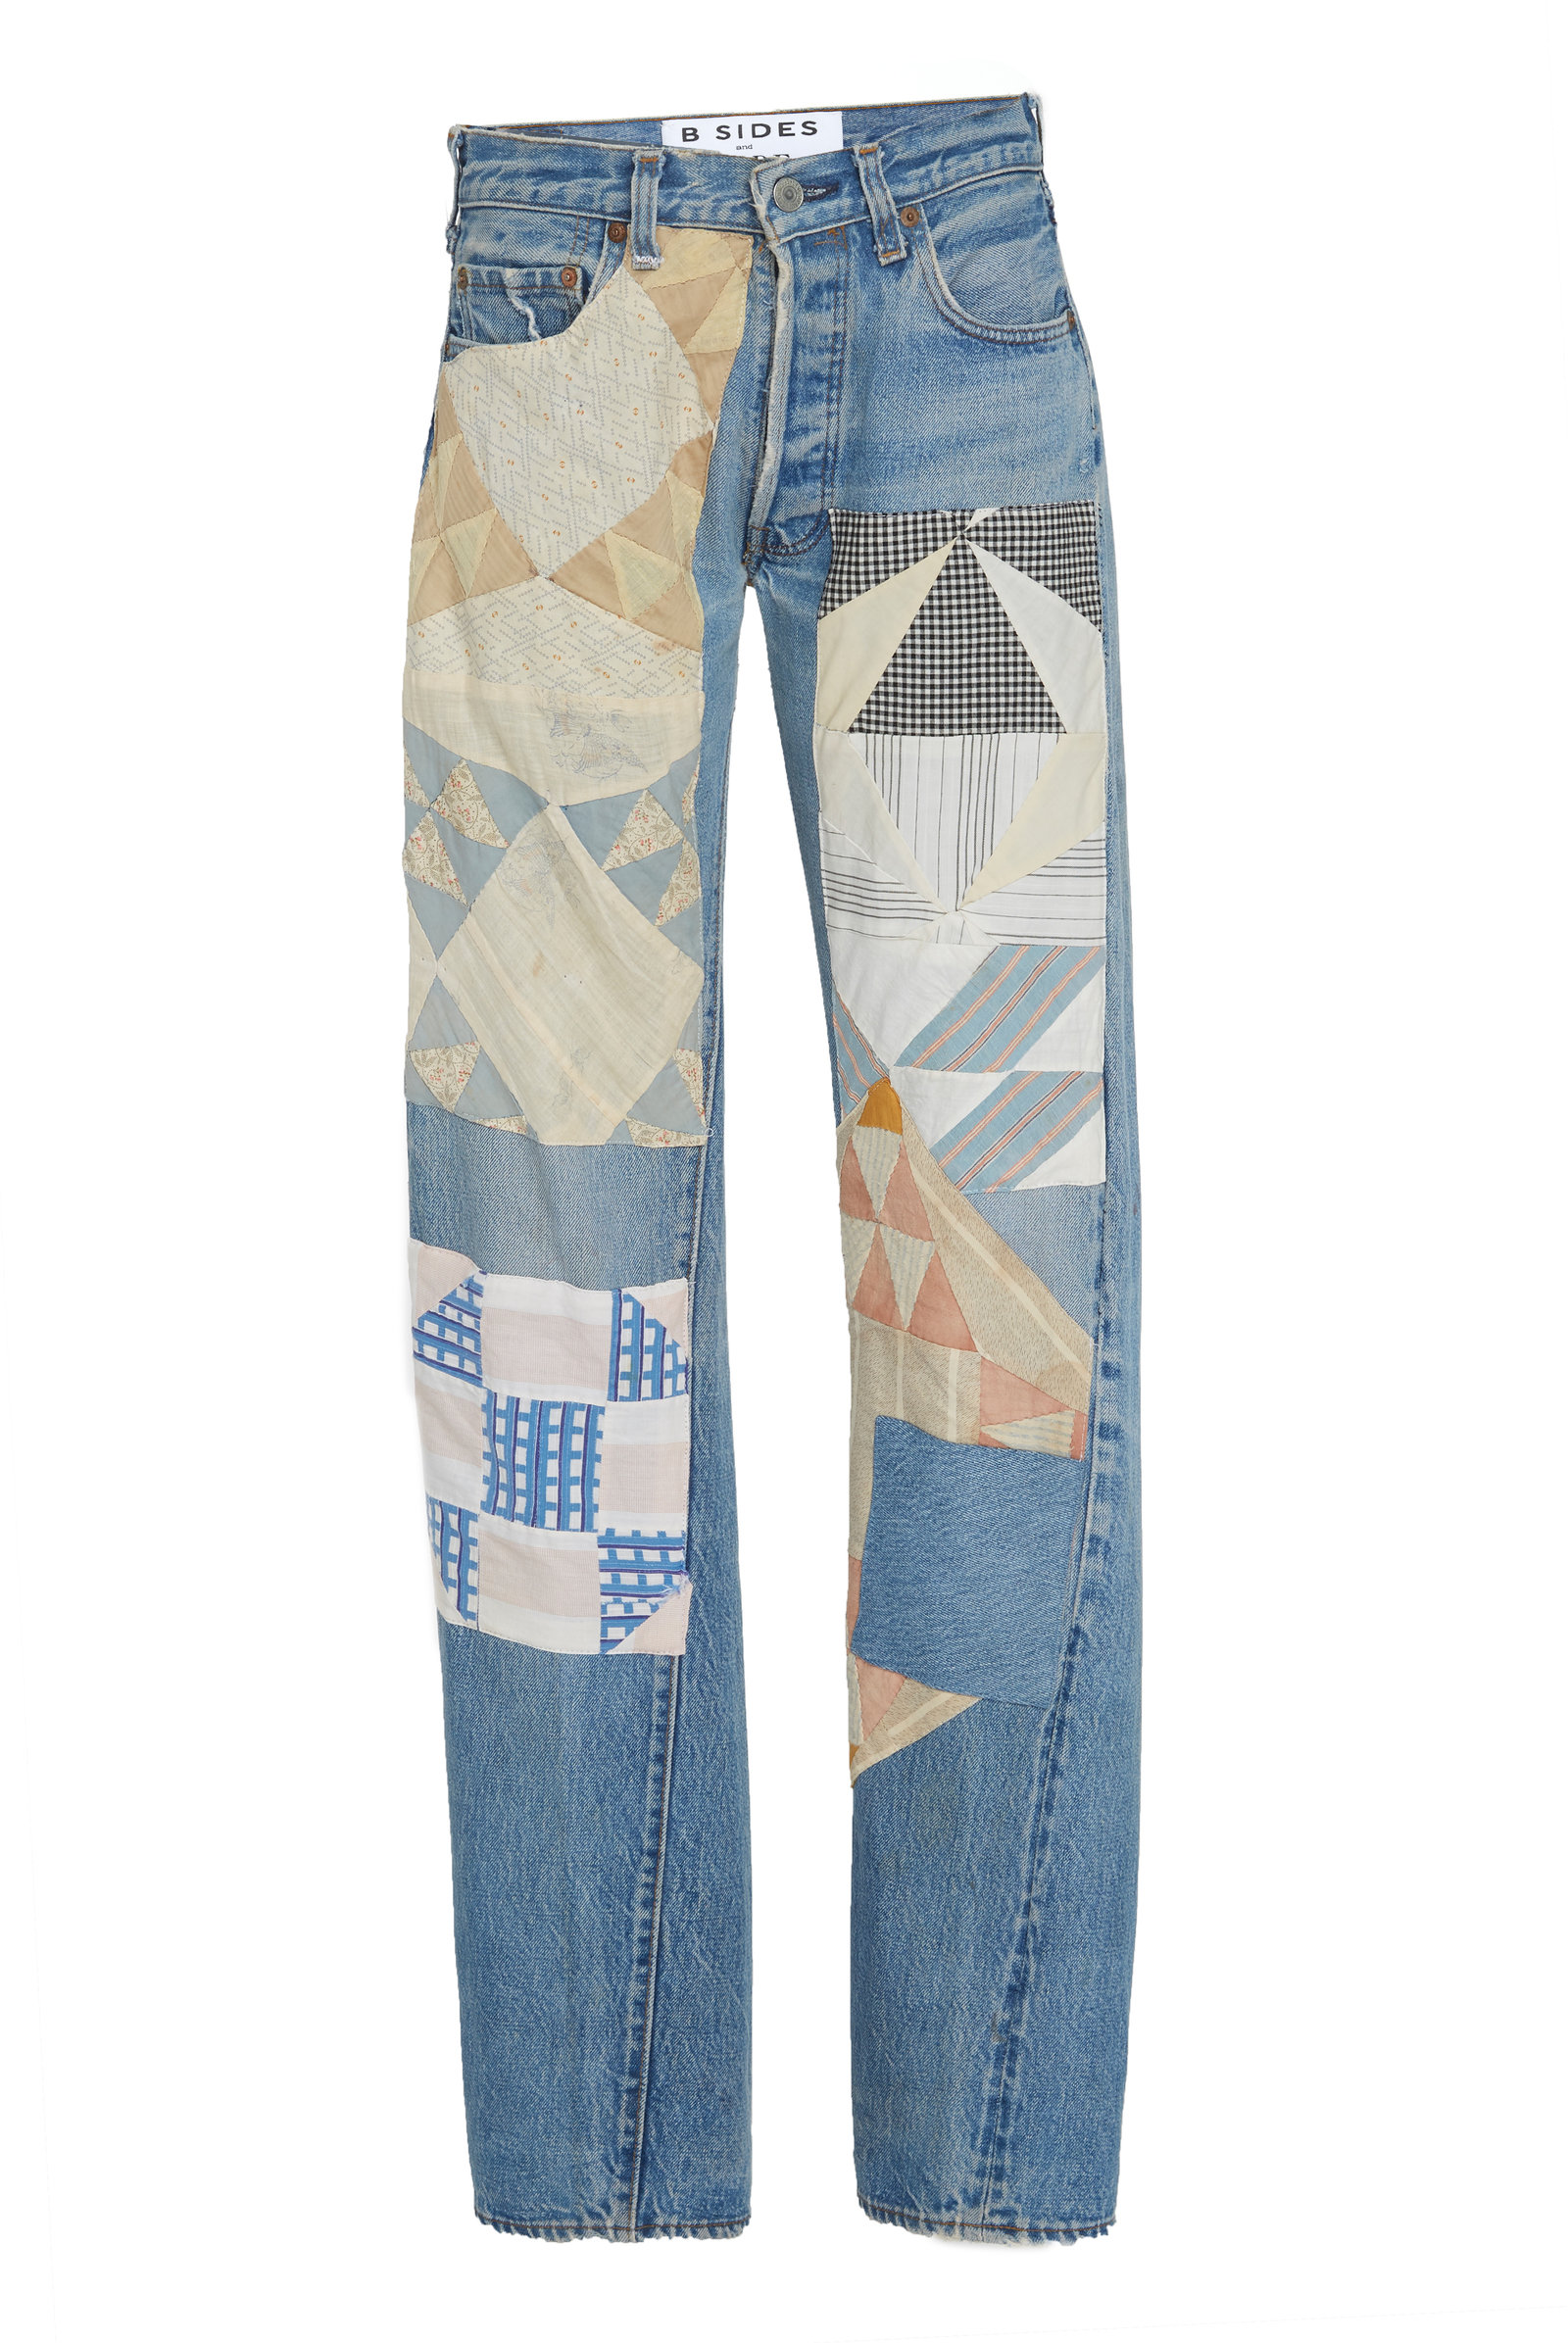 B SIDES Exclusive Mid-Rise Patchwork Straight-Leg Jeans in Light Wash